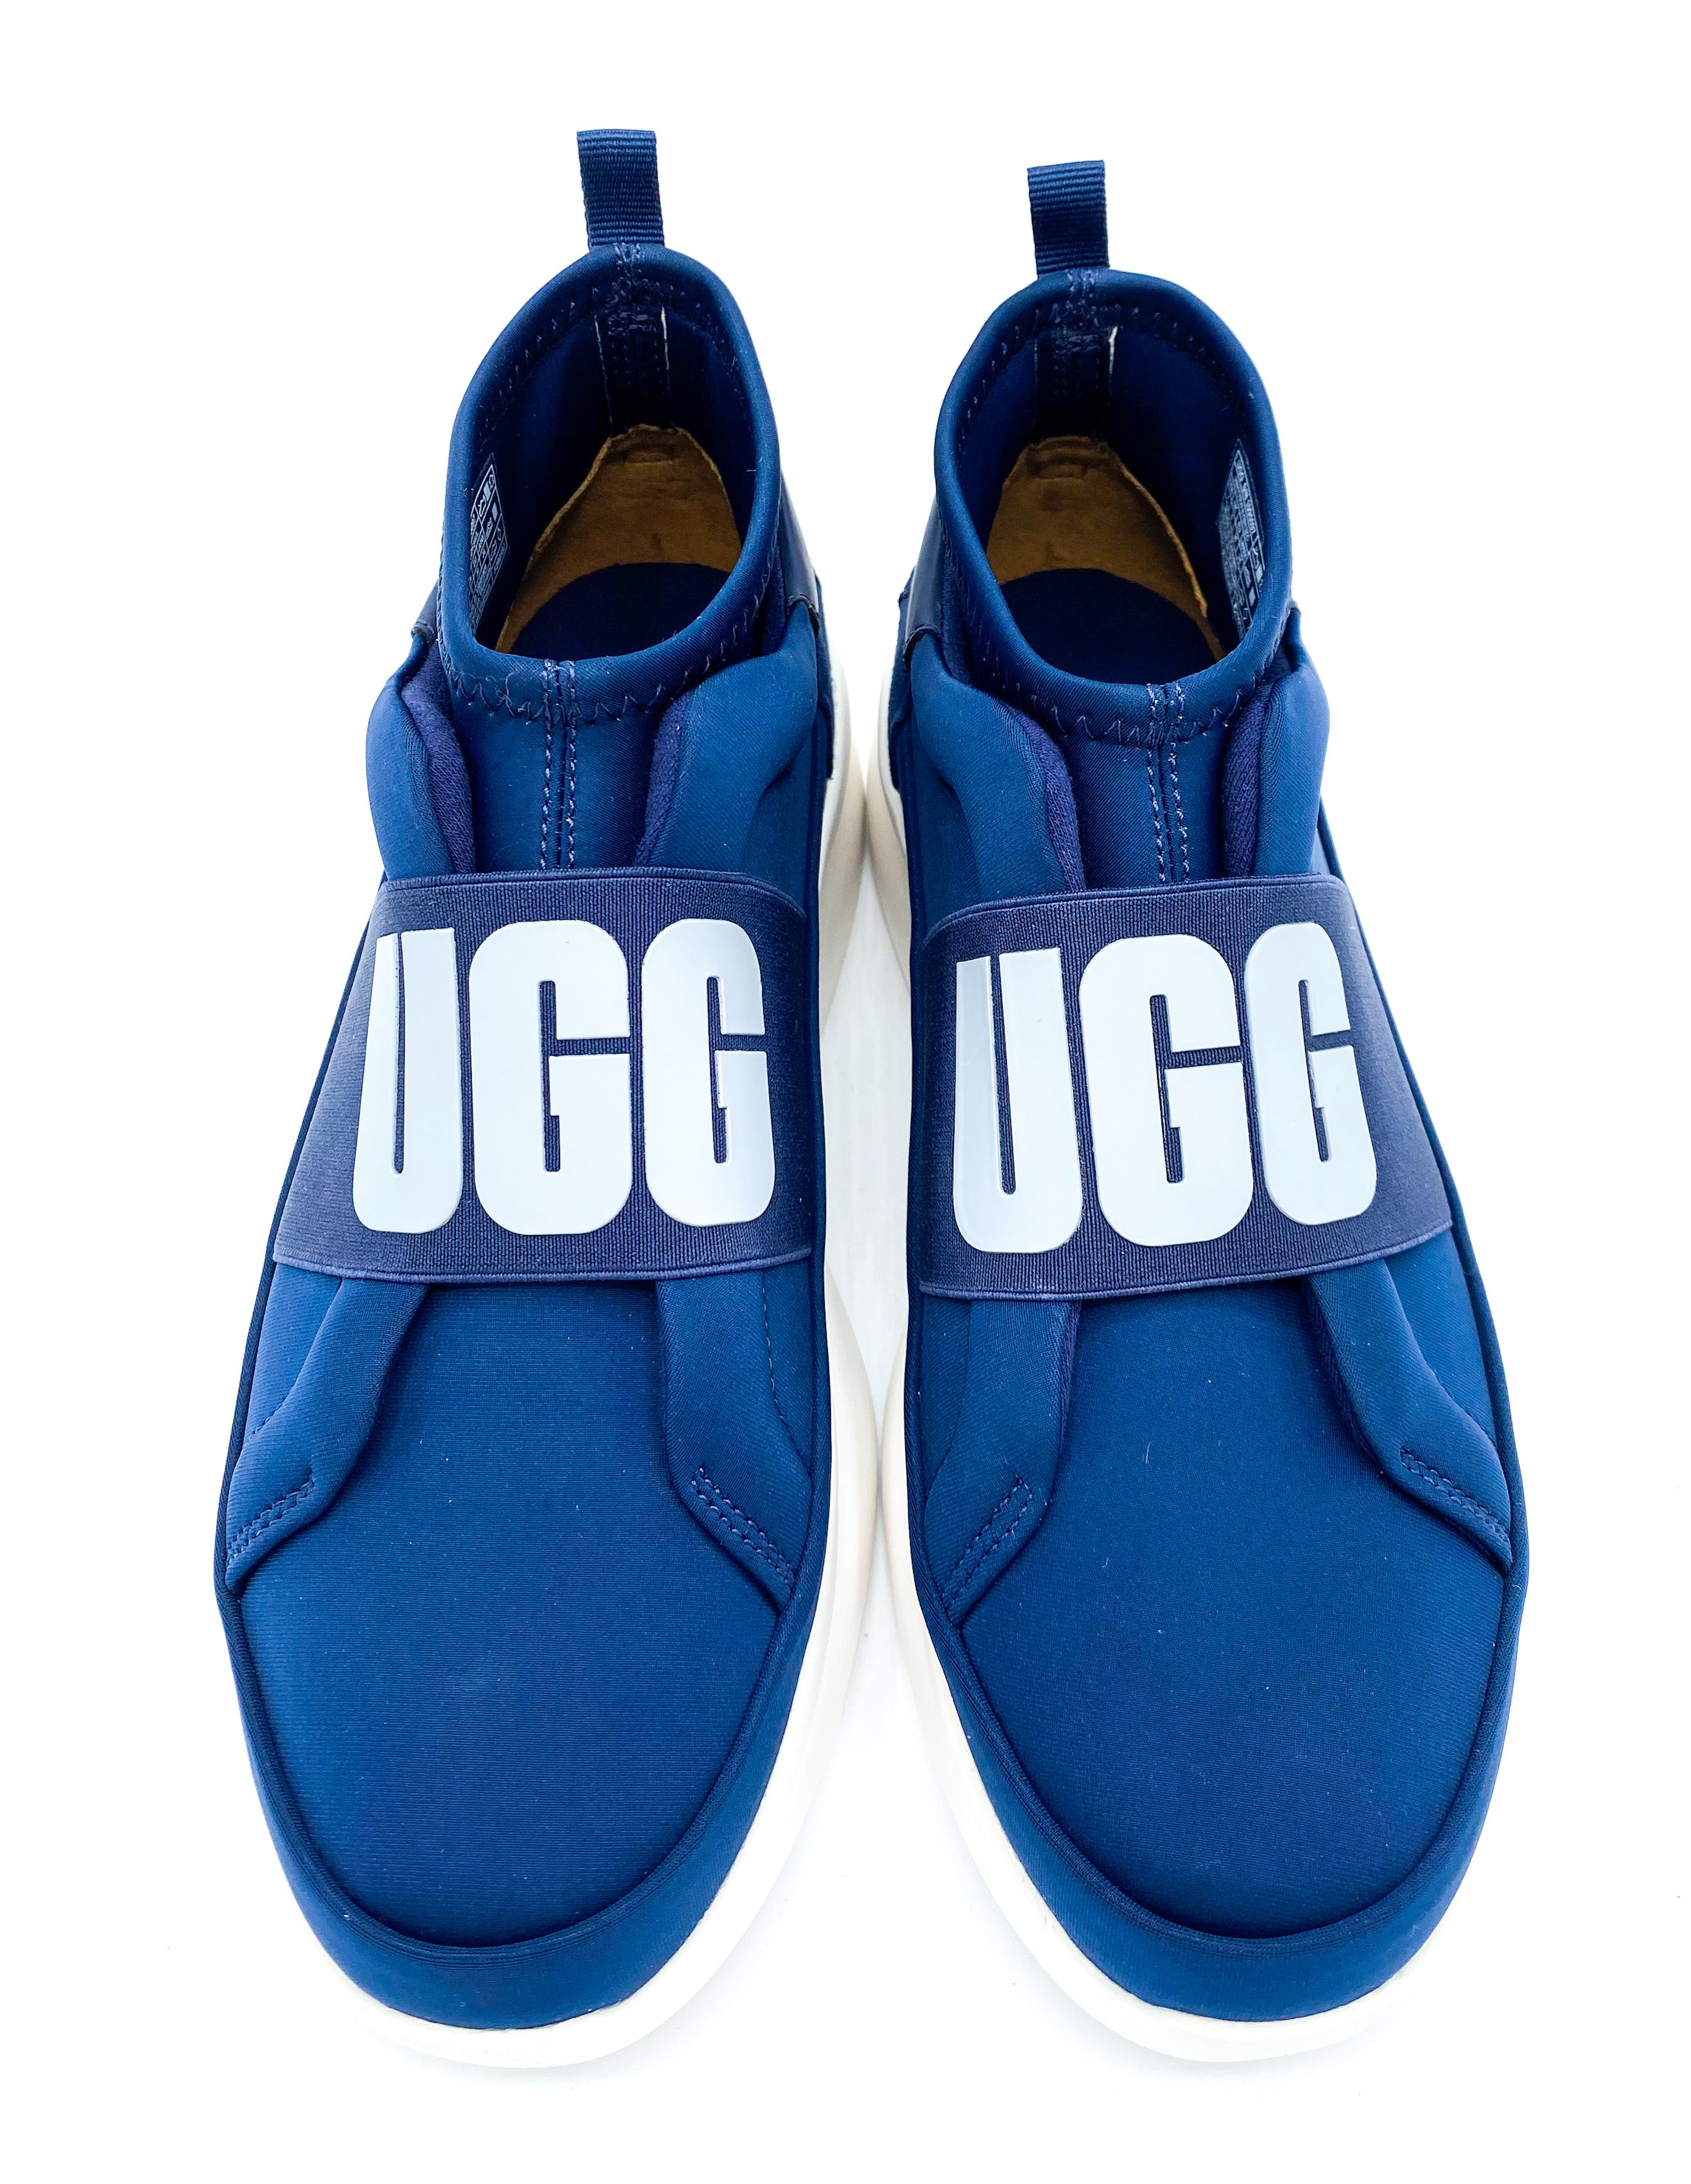 Neutra Sneakers UGG